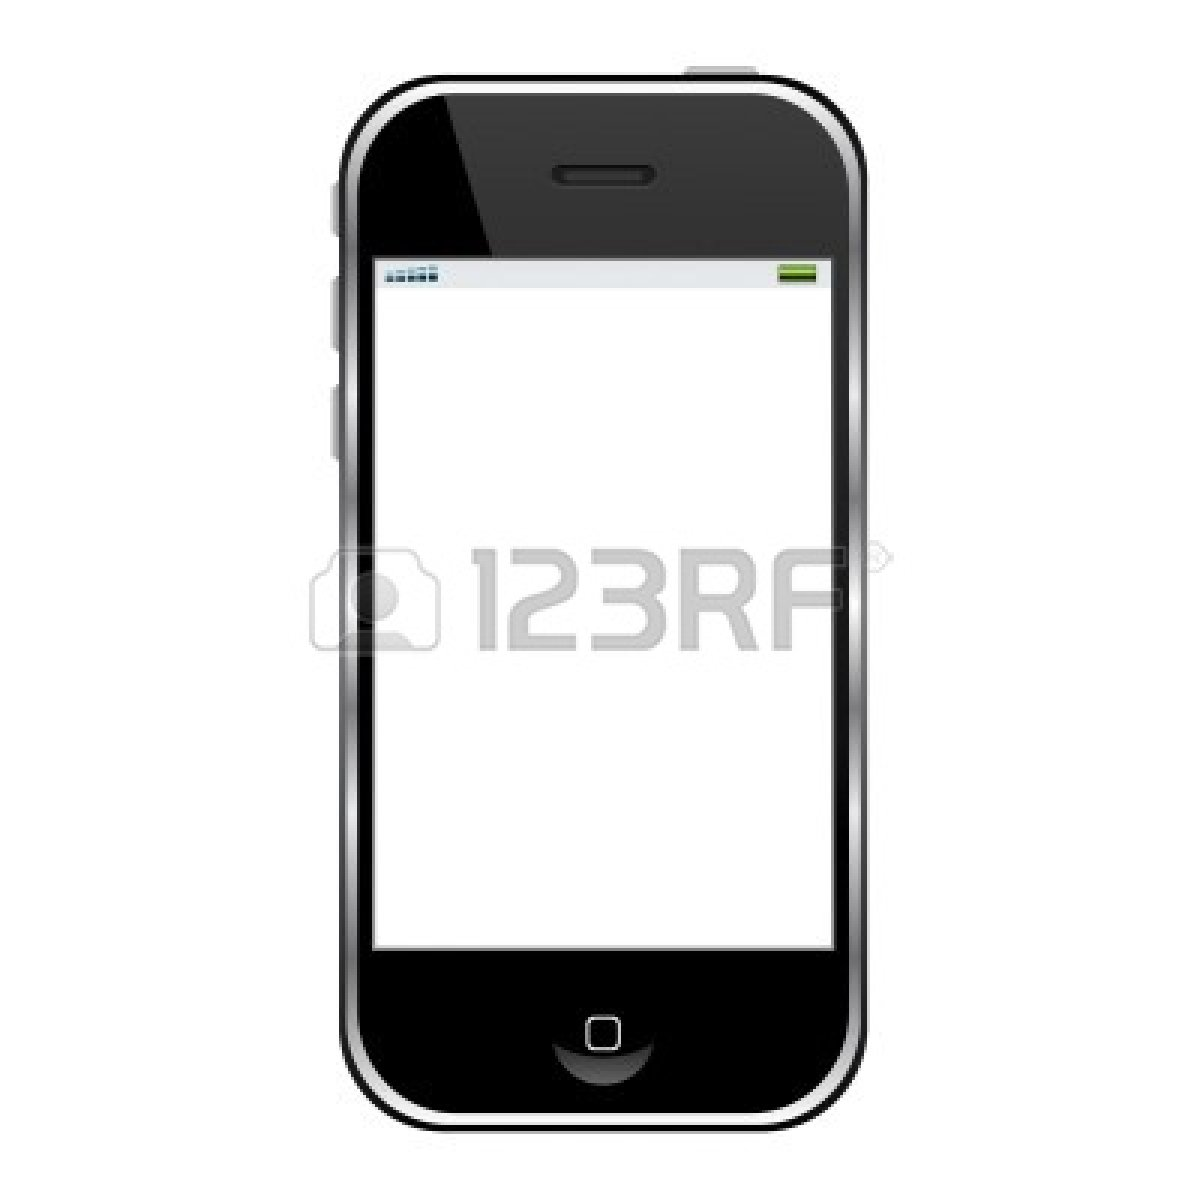 Cell Phone Clipart Black And White   Clipart Panda   Free Clipart